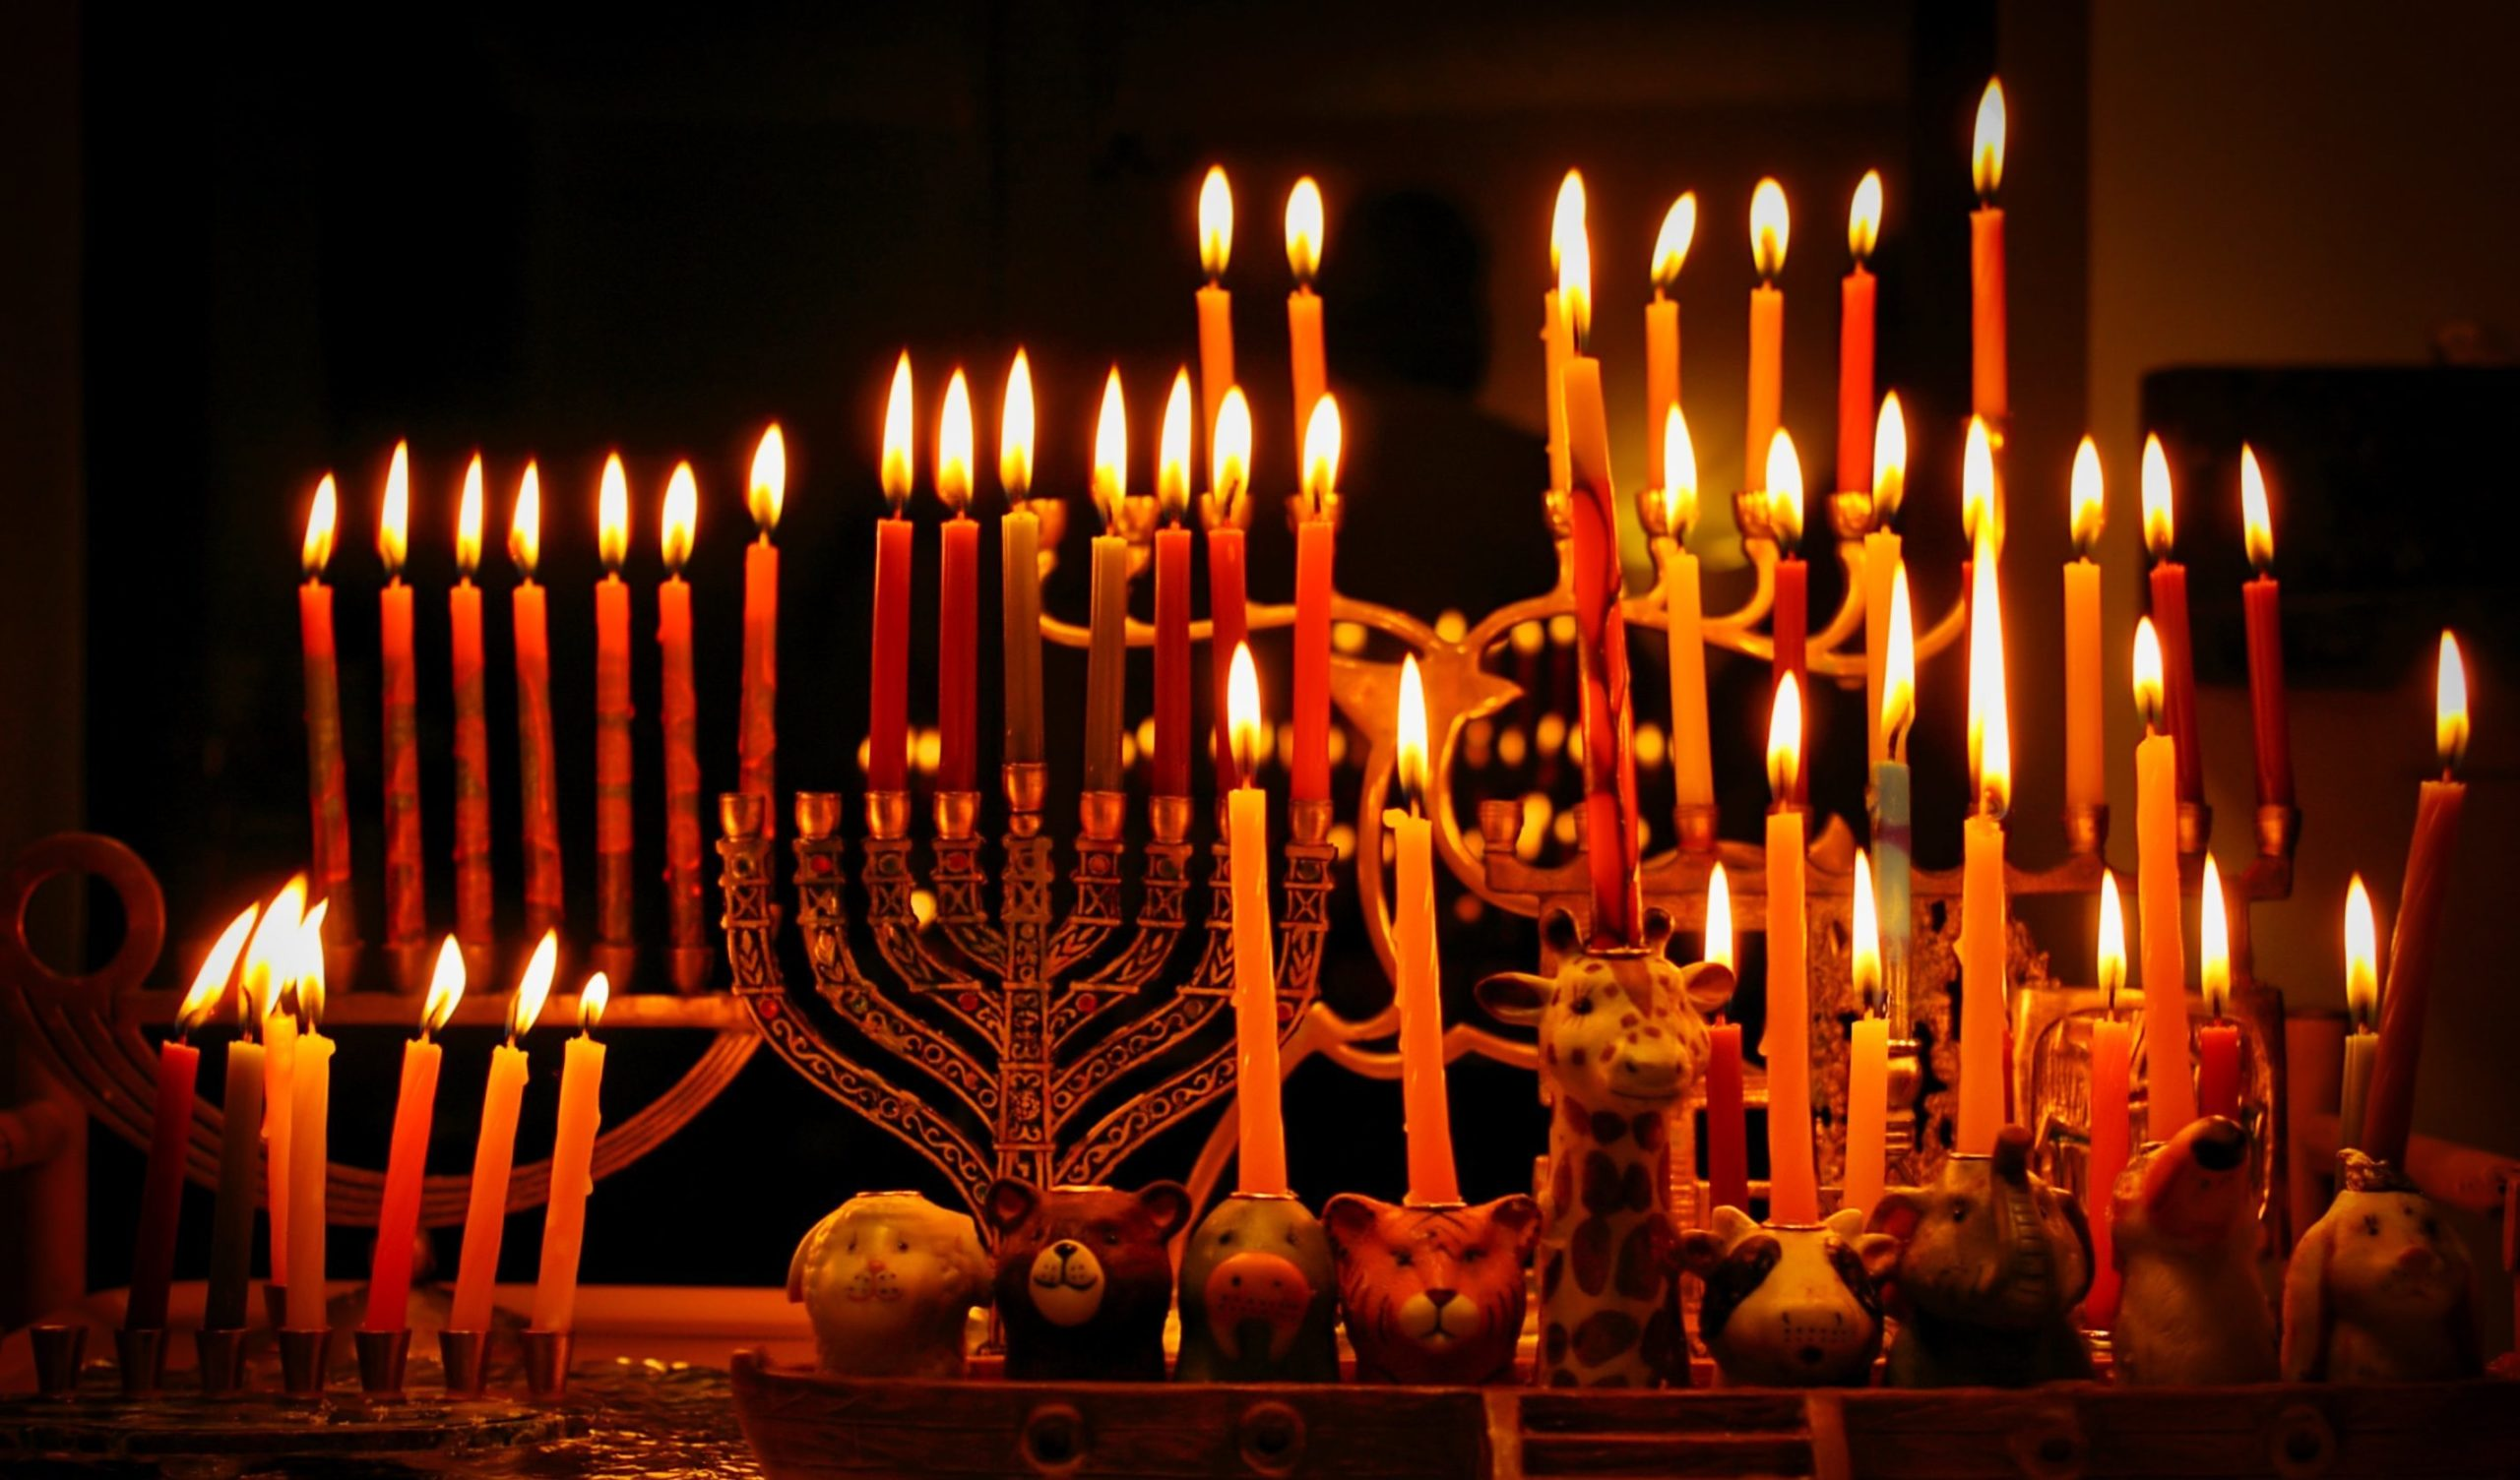 Celebrate Chanukah with your Riverdale Temple family and share in the Festival of Lights!